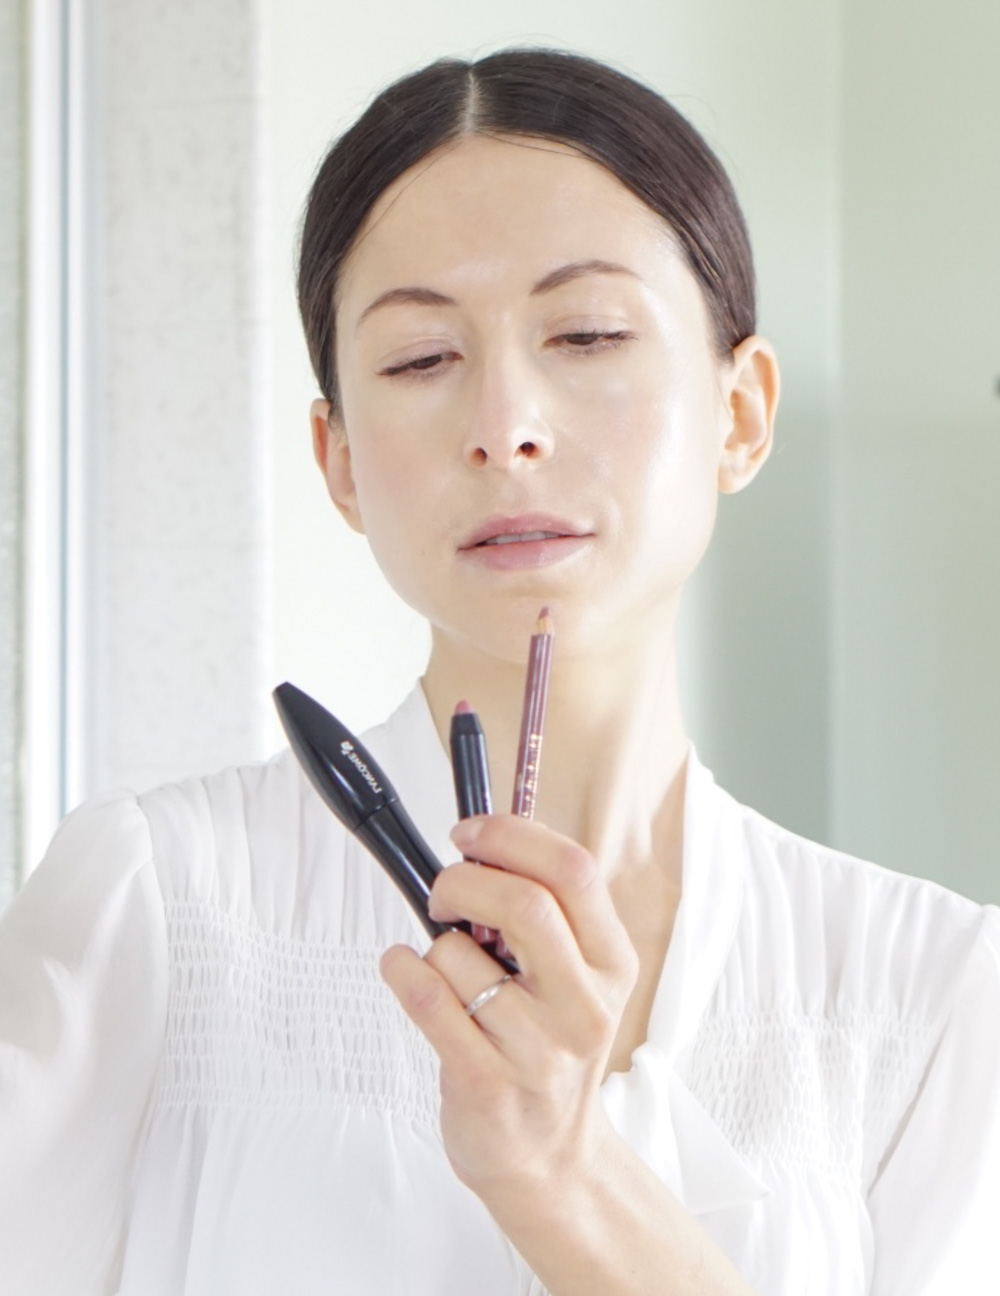 The Minimal Makeup To Showcase Your Natural Beauty